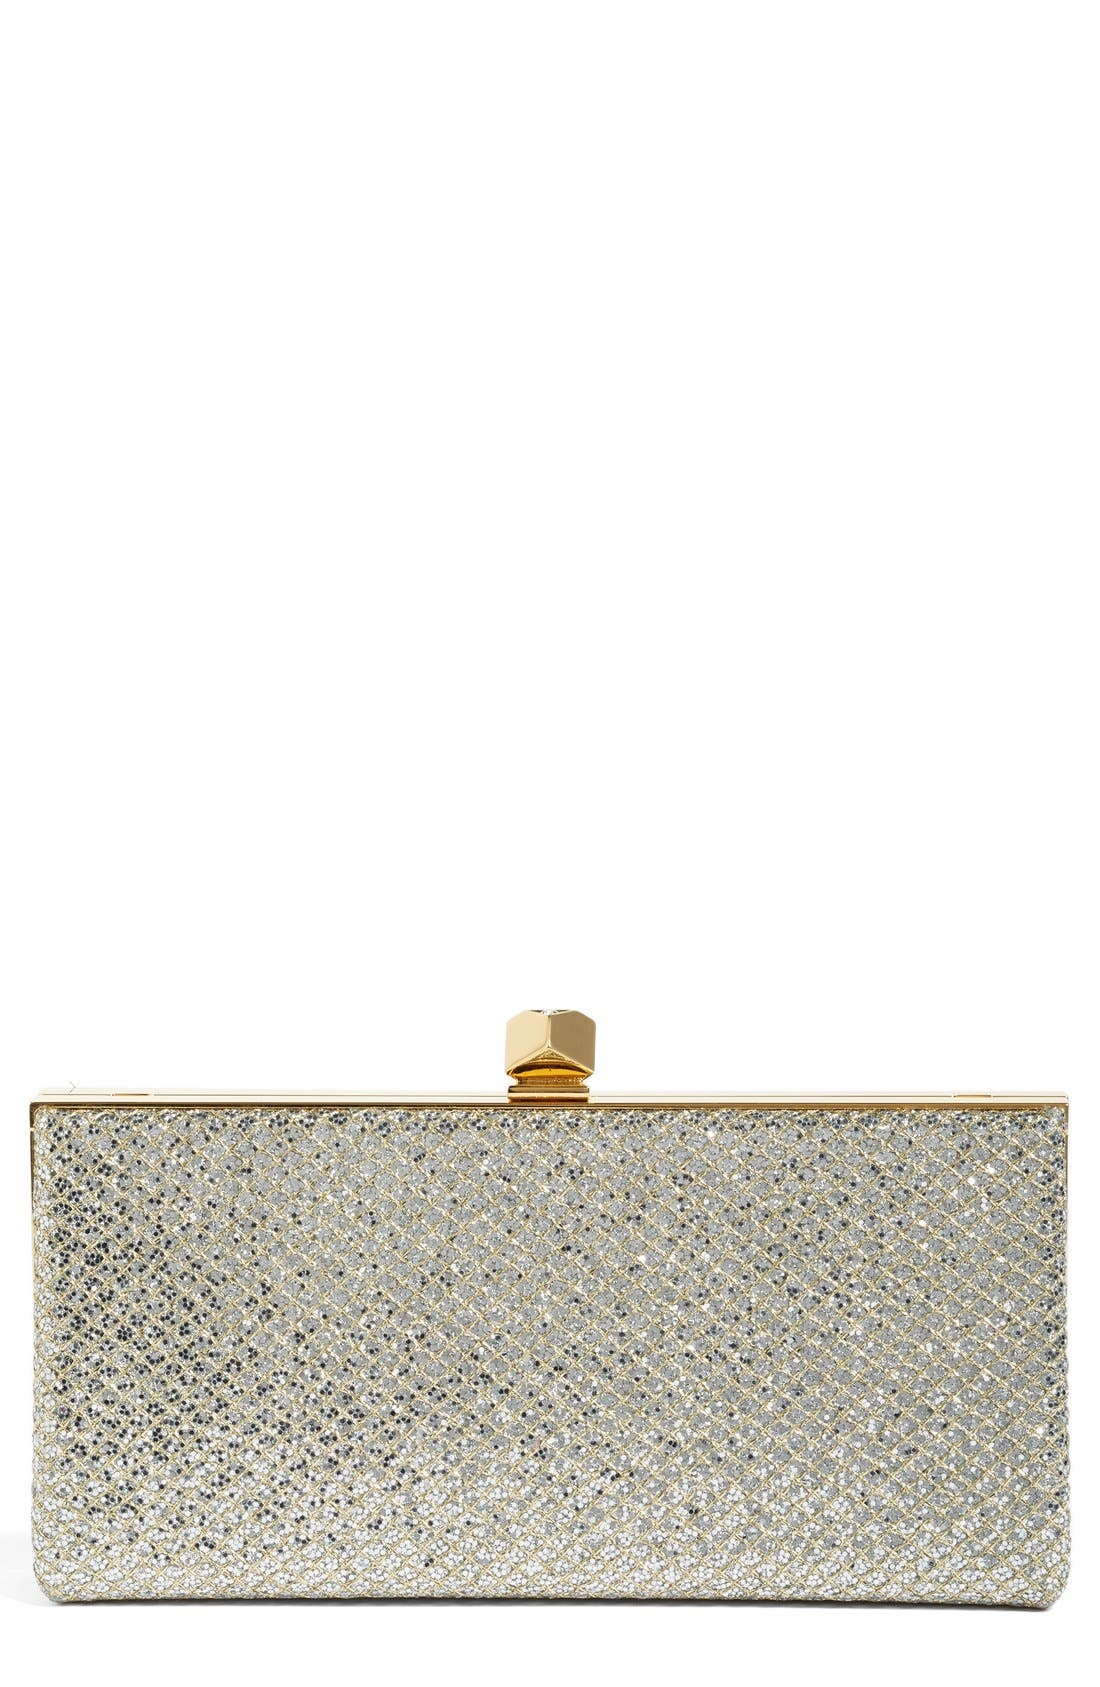 Alternate Image 1 Selected - Jimmy Choo Celeste Glitter Frame Clutch